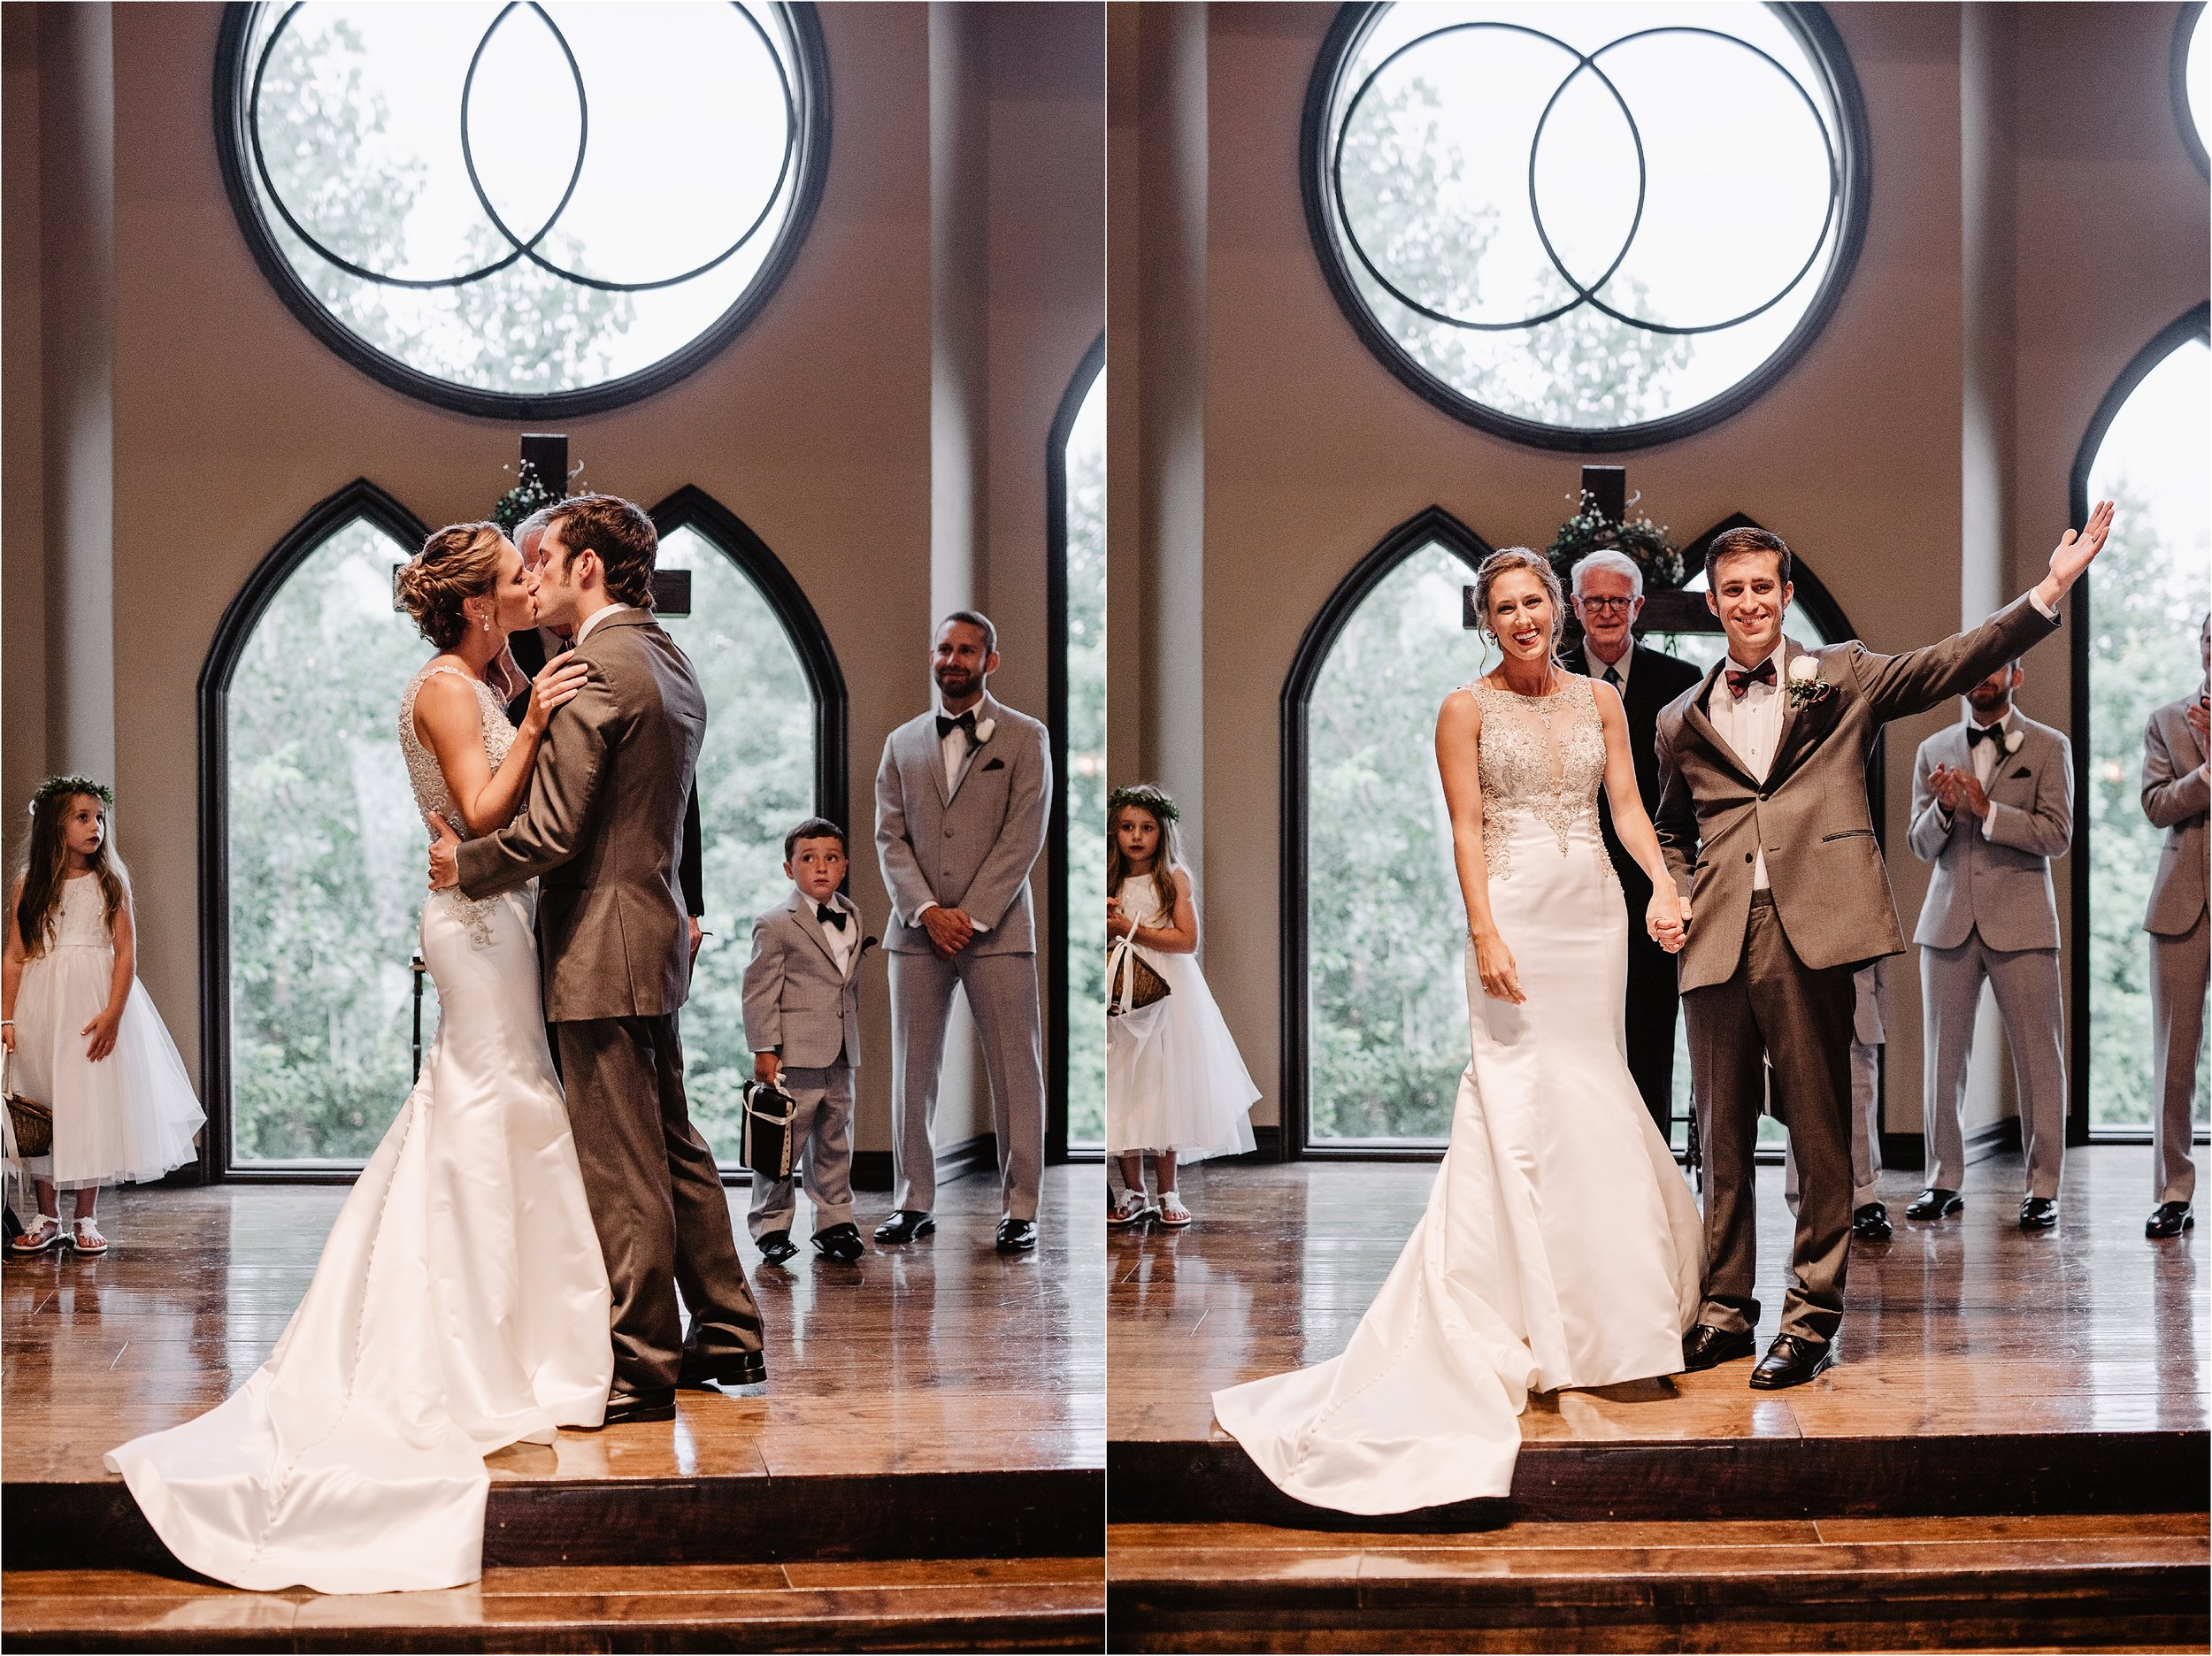 Vesica Piscis Chapel, Oklahoma Wedding, Regan and Brock Hime-36.jpg